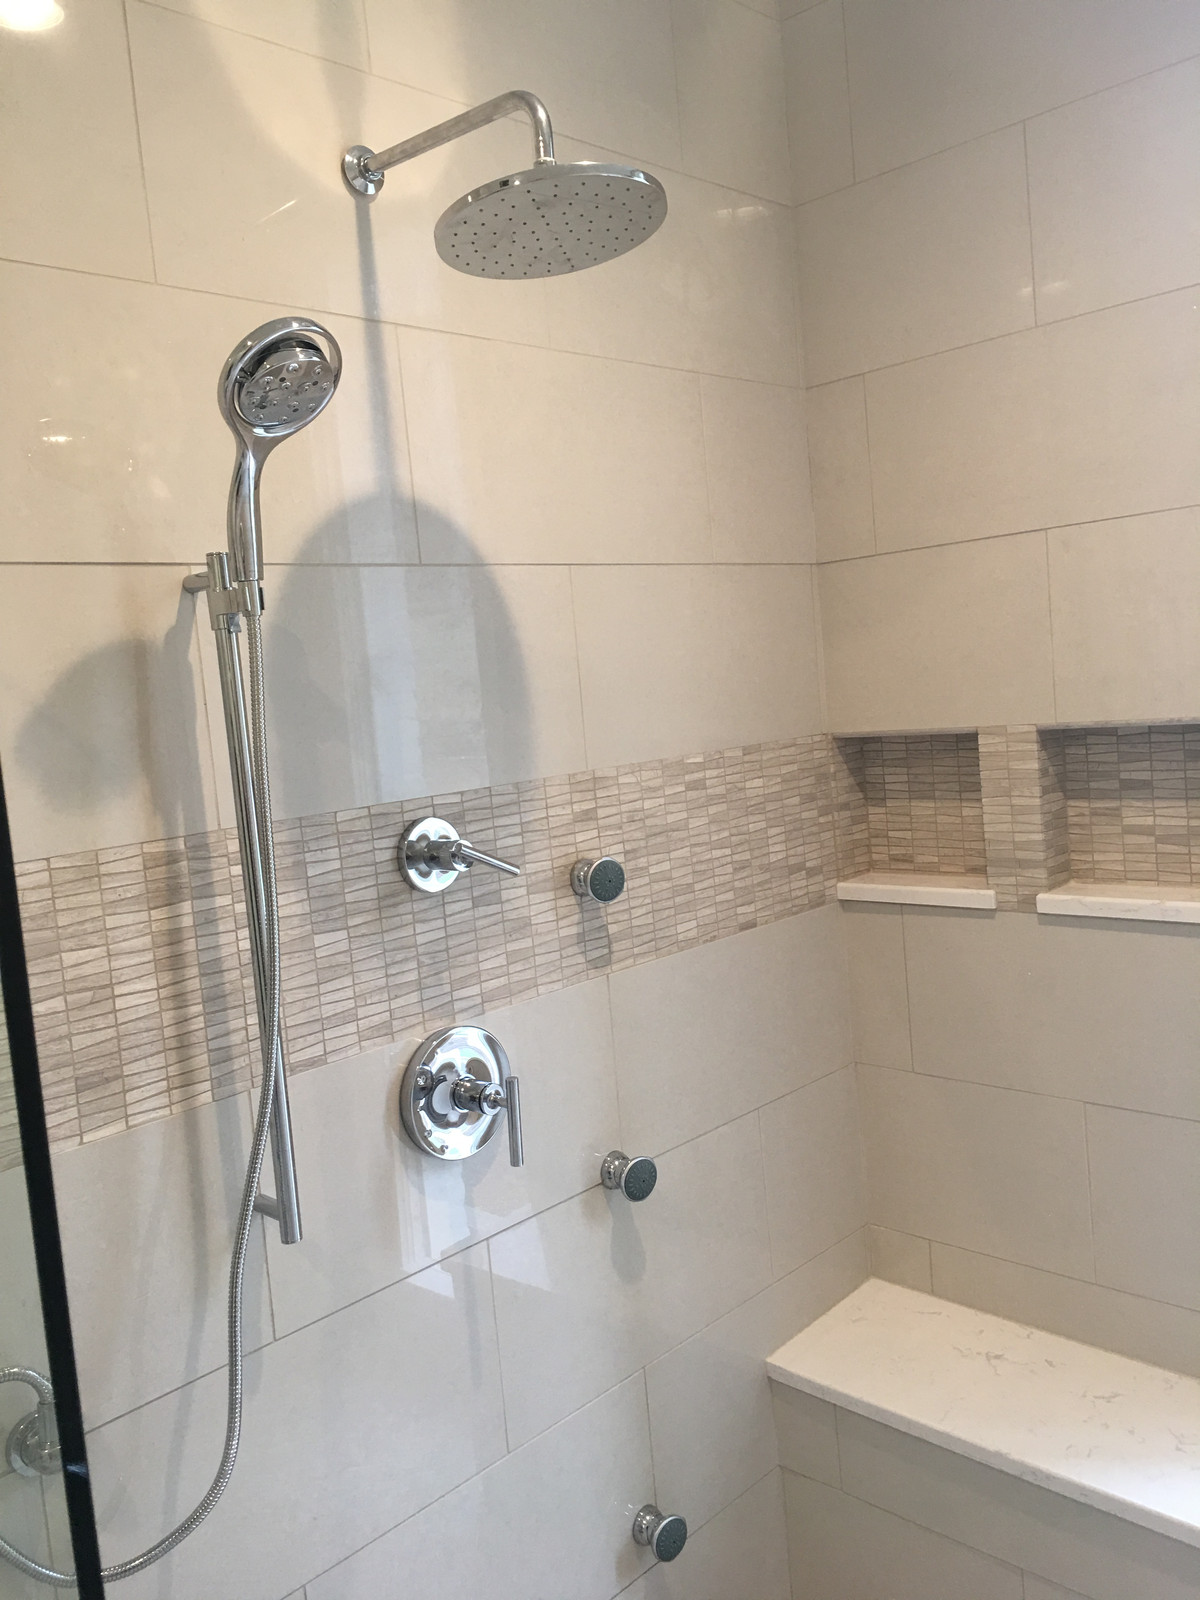 Kohler Purist Rainhead Modern Shower